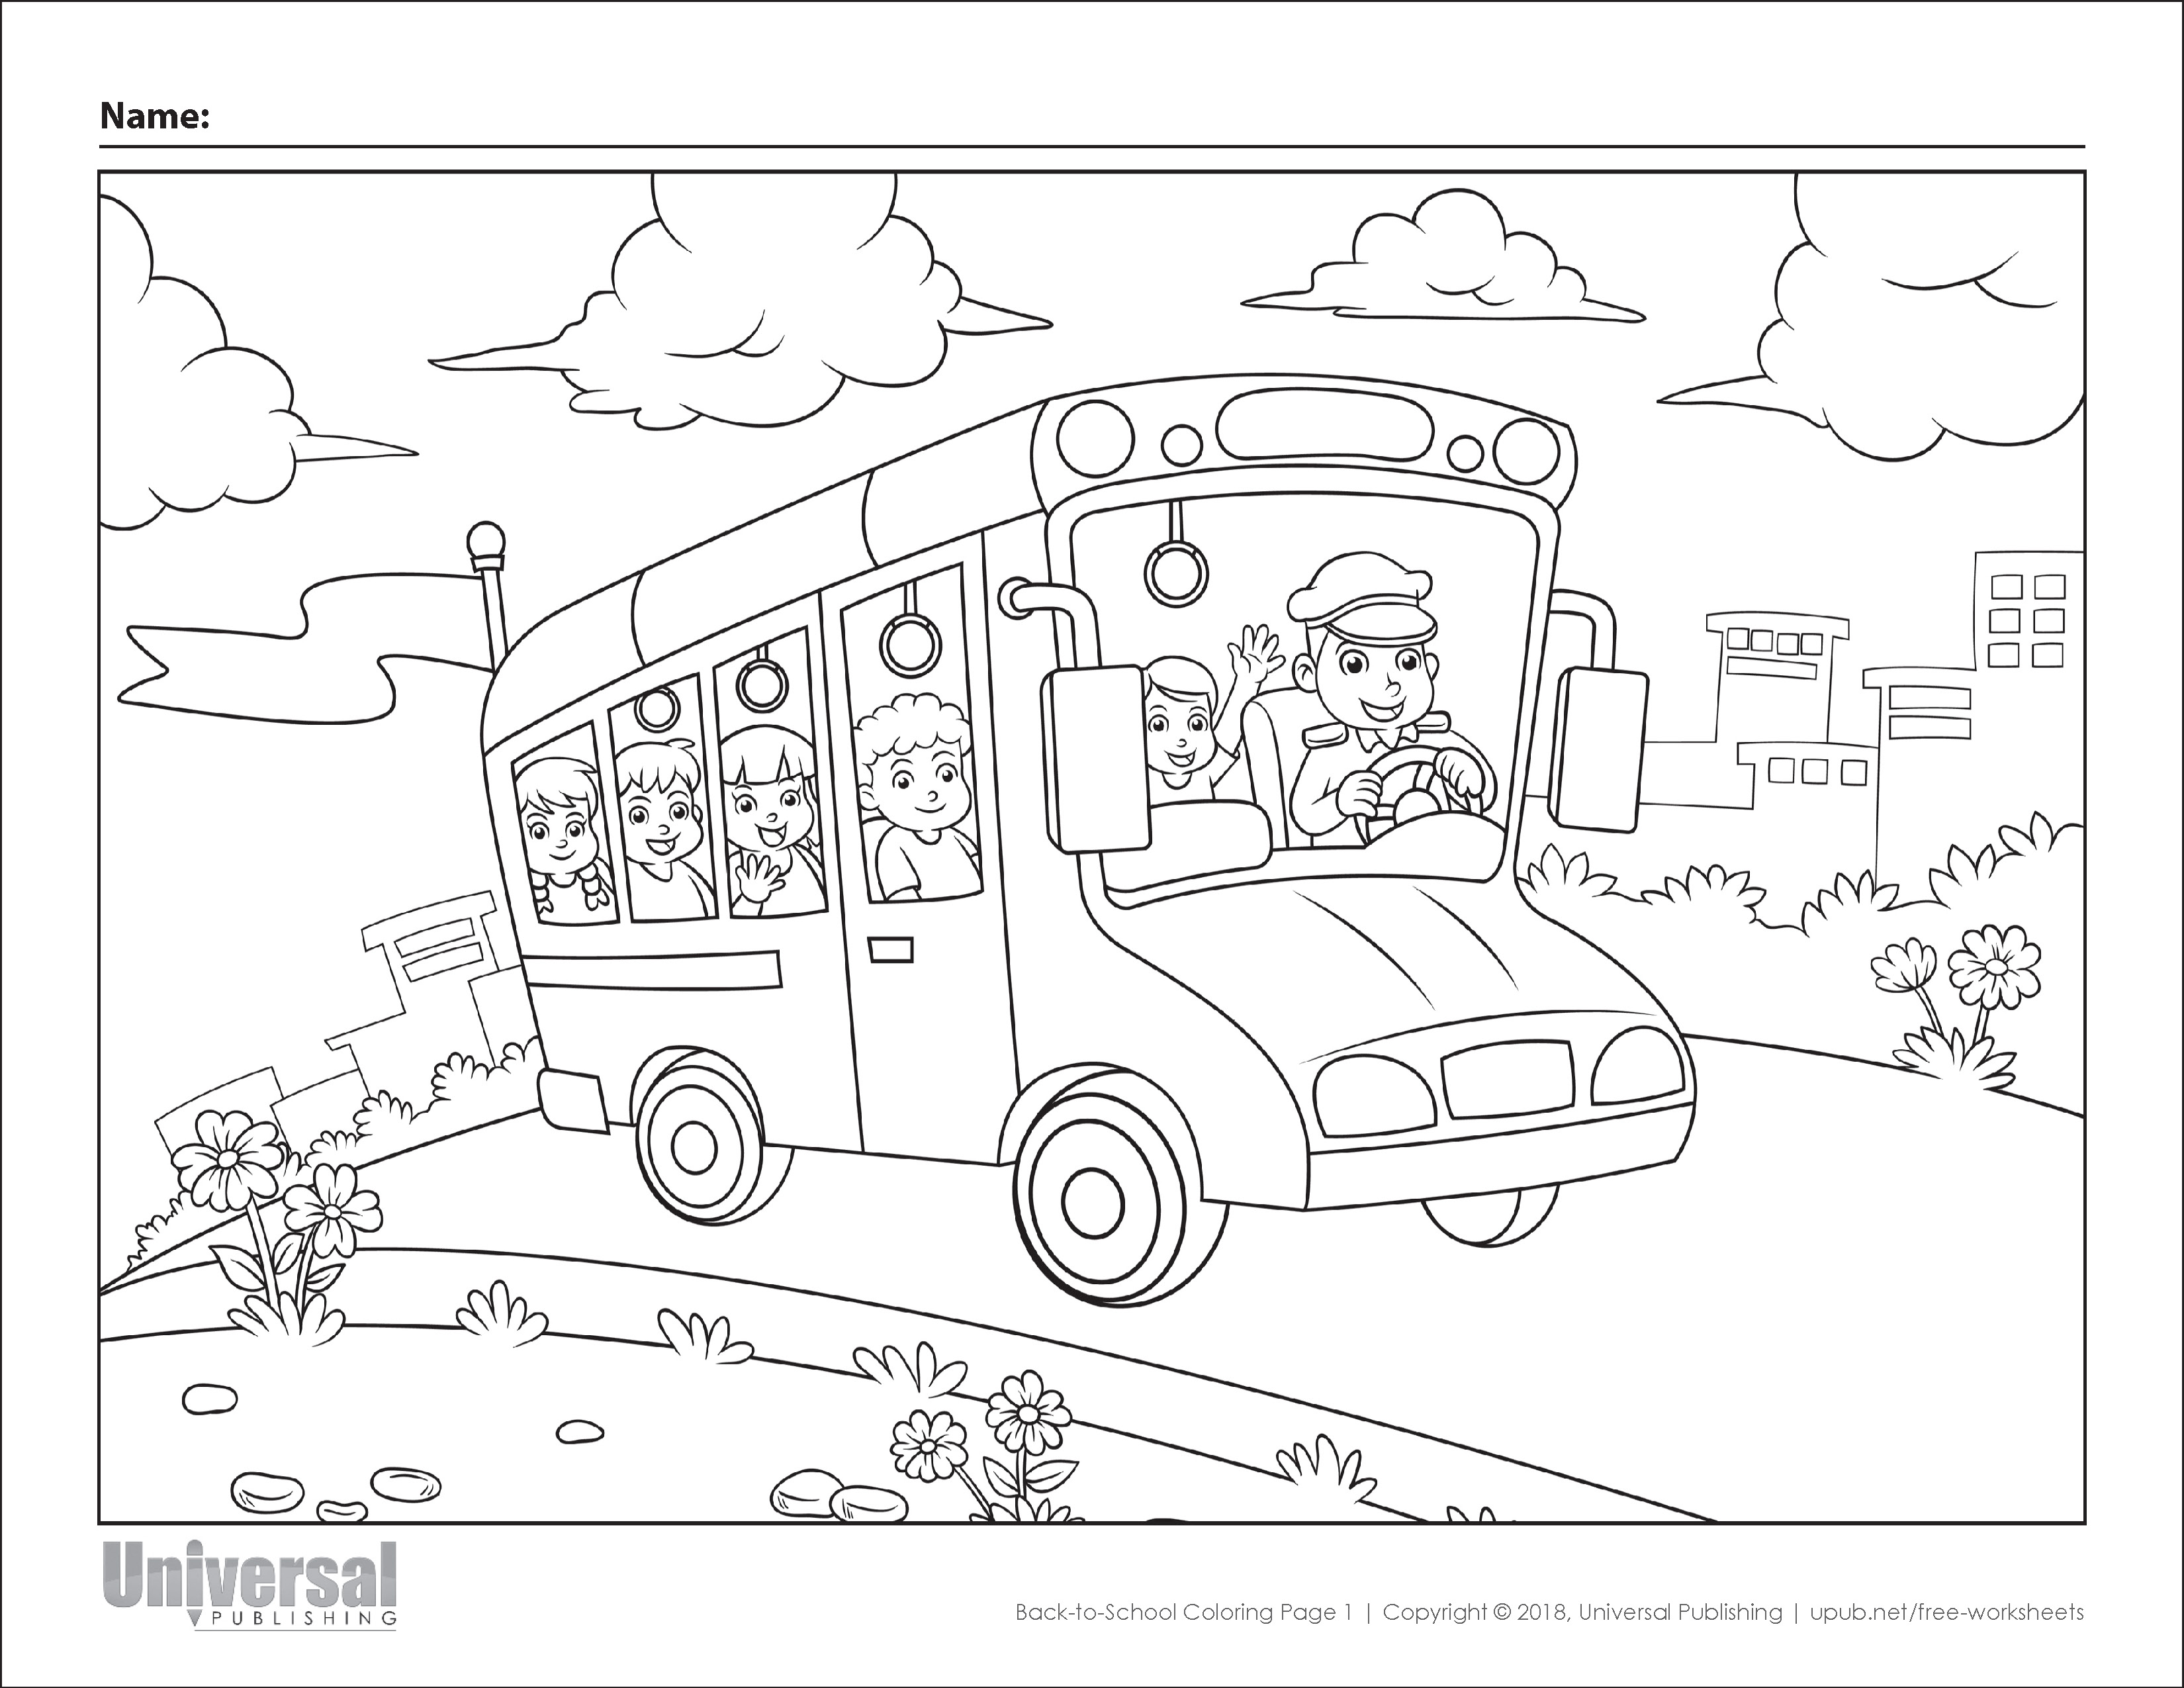 Back to School Coloring Page 1